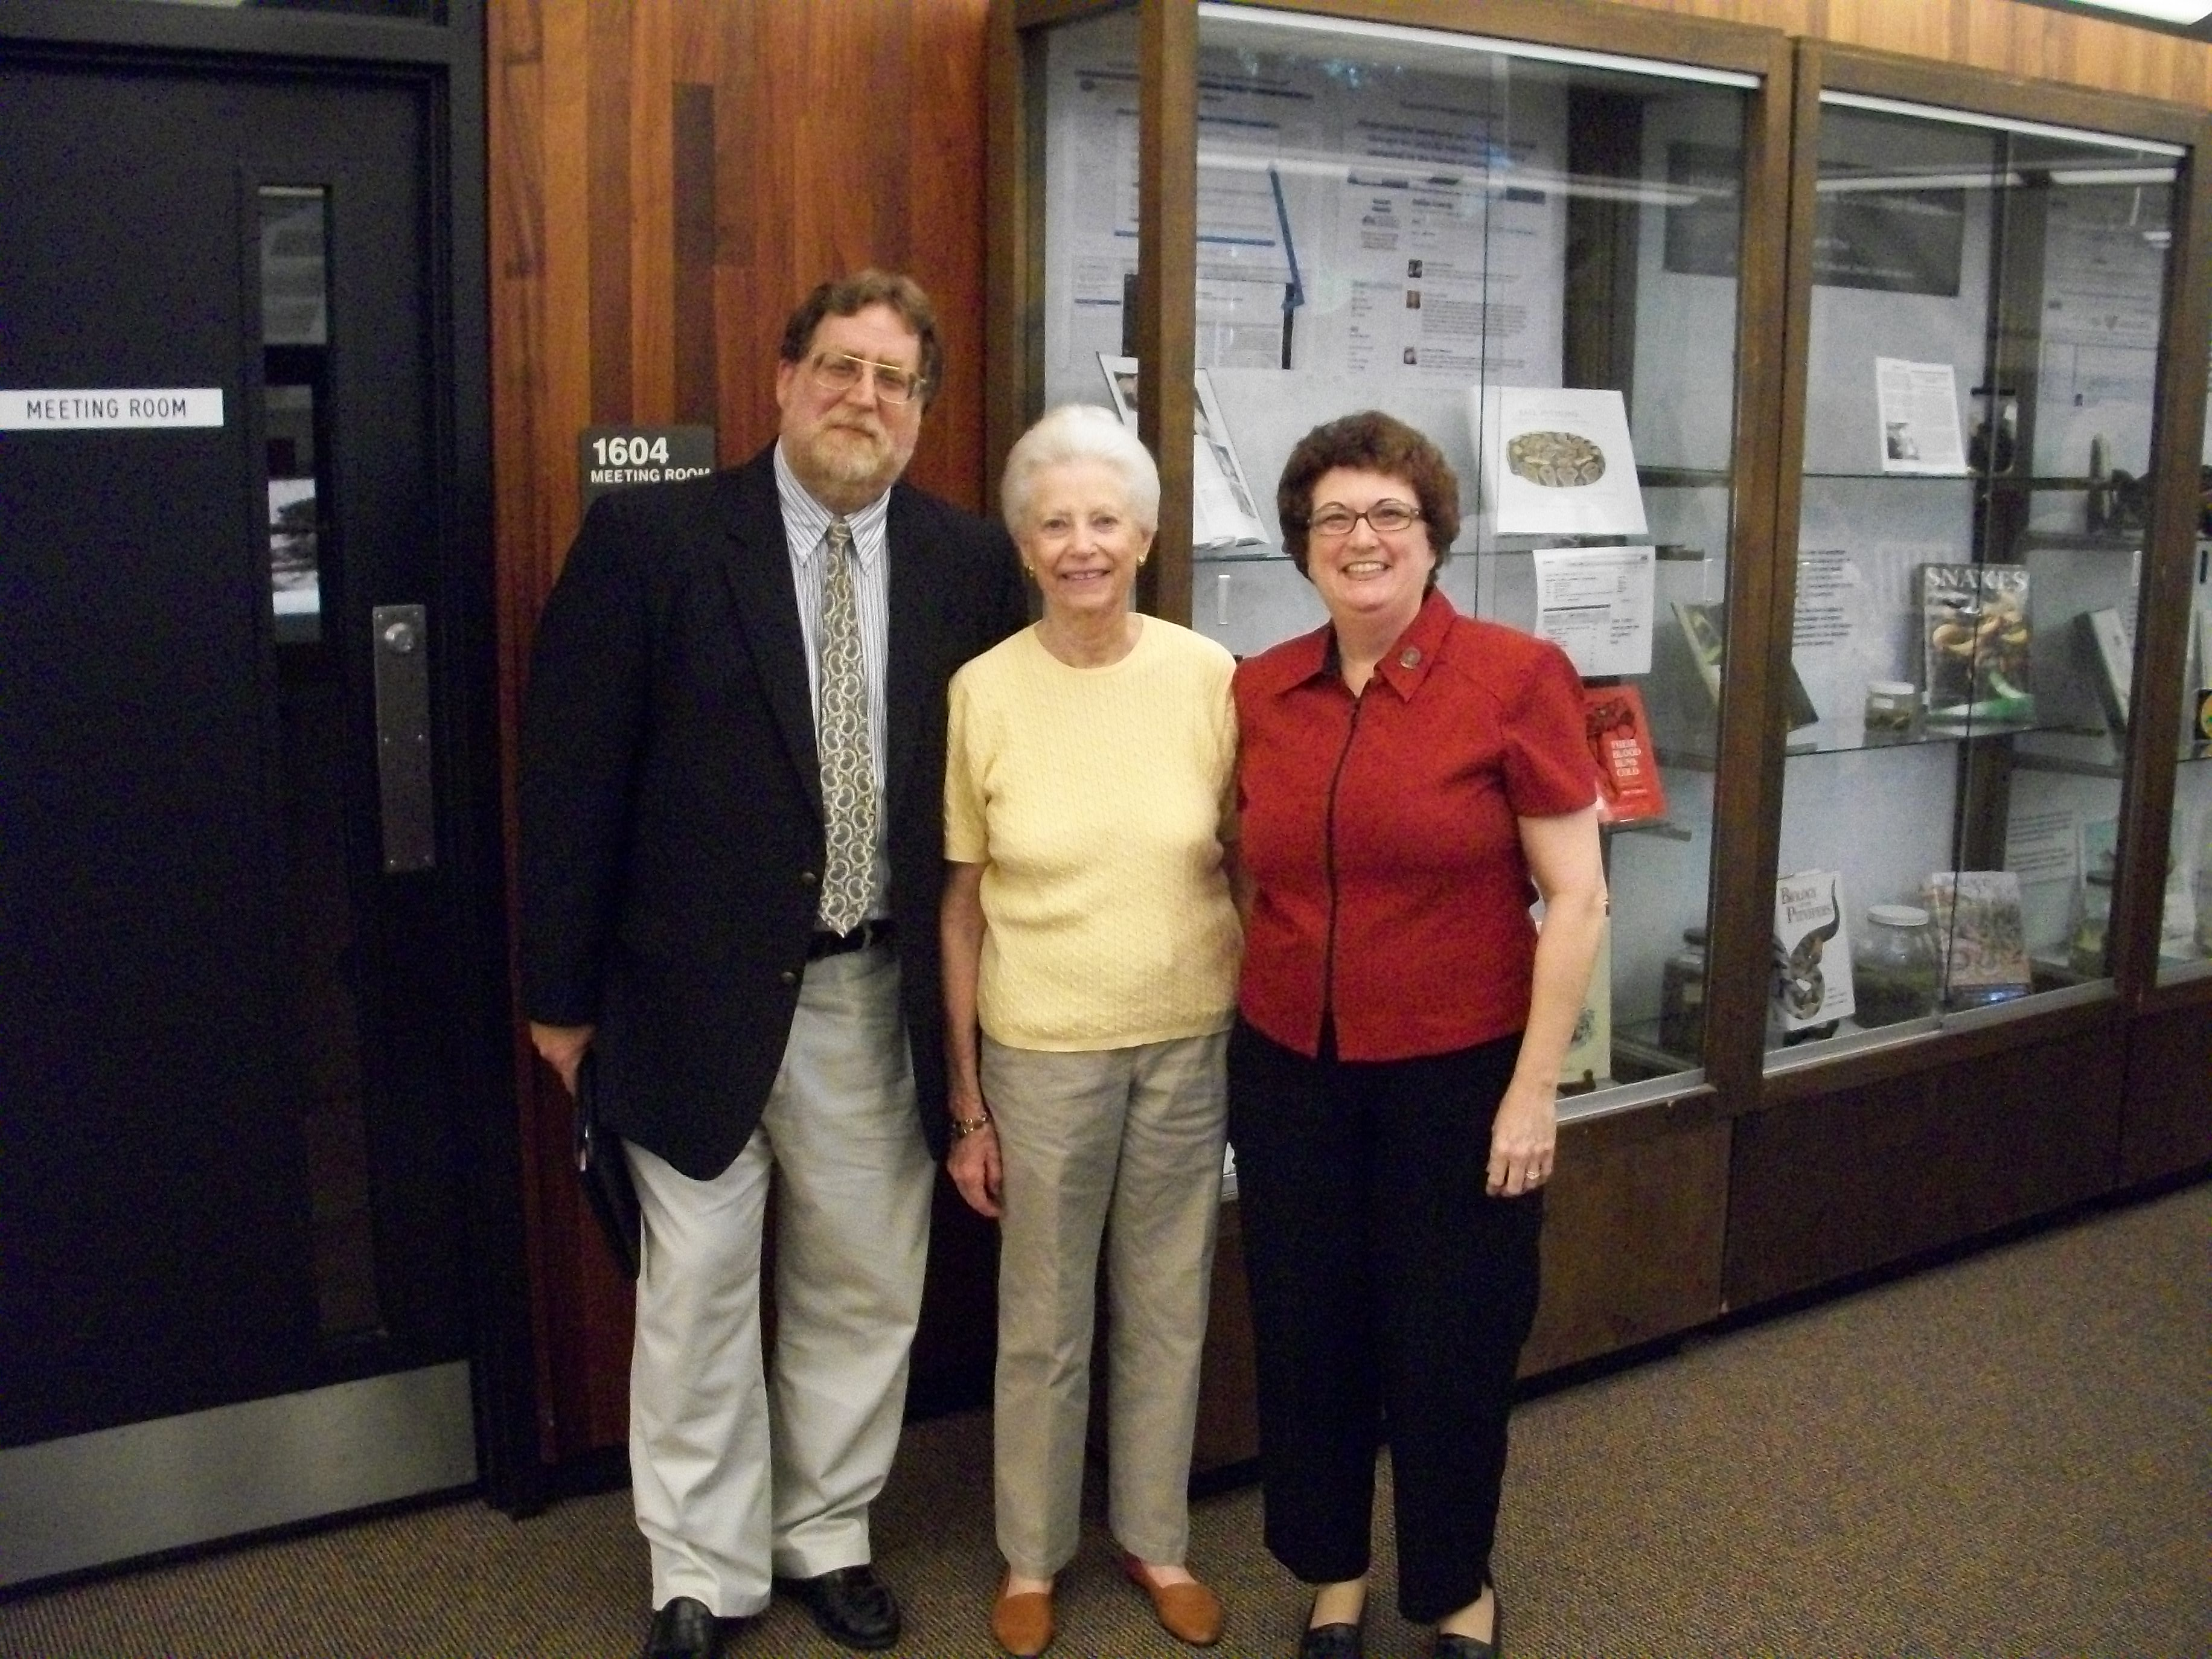 Dr. Alan Bernstein, Interim Library Director, Elizabeth Bechtel, and Sherrida Crawford, Library Biology Liaison.